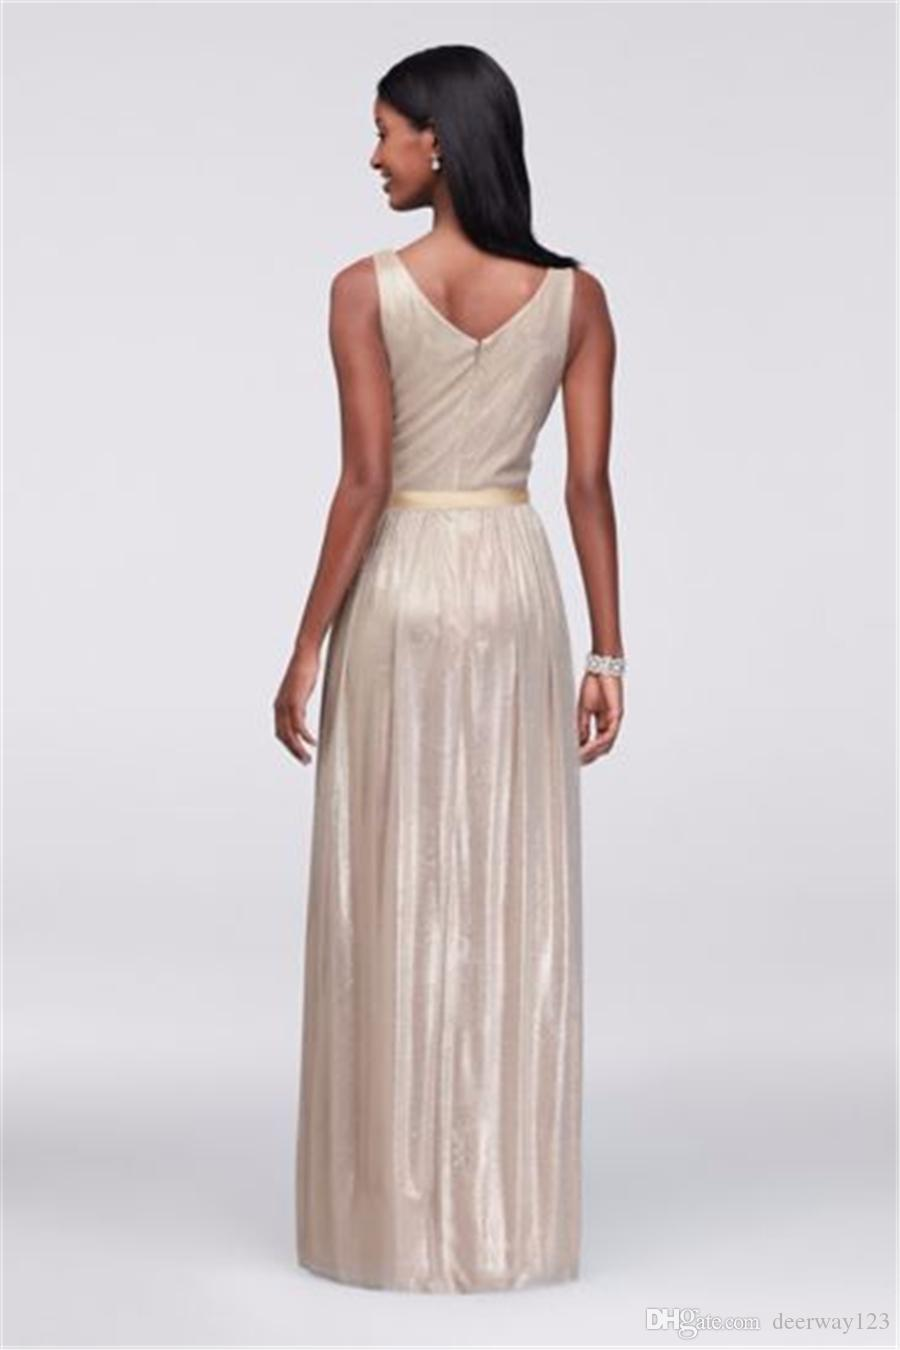 Ruched V-neck Bodice Metallic Foil Evening Gown with Ruched Waist Champagne Floor Length 263343 Prom Dresses vestido de festa curto